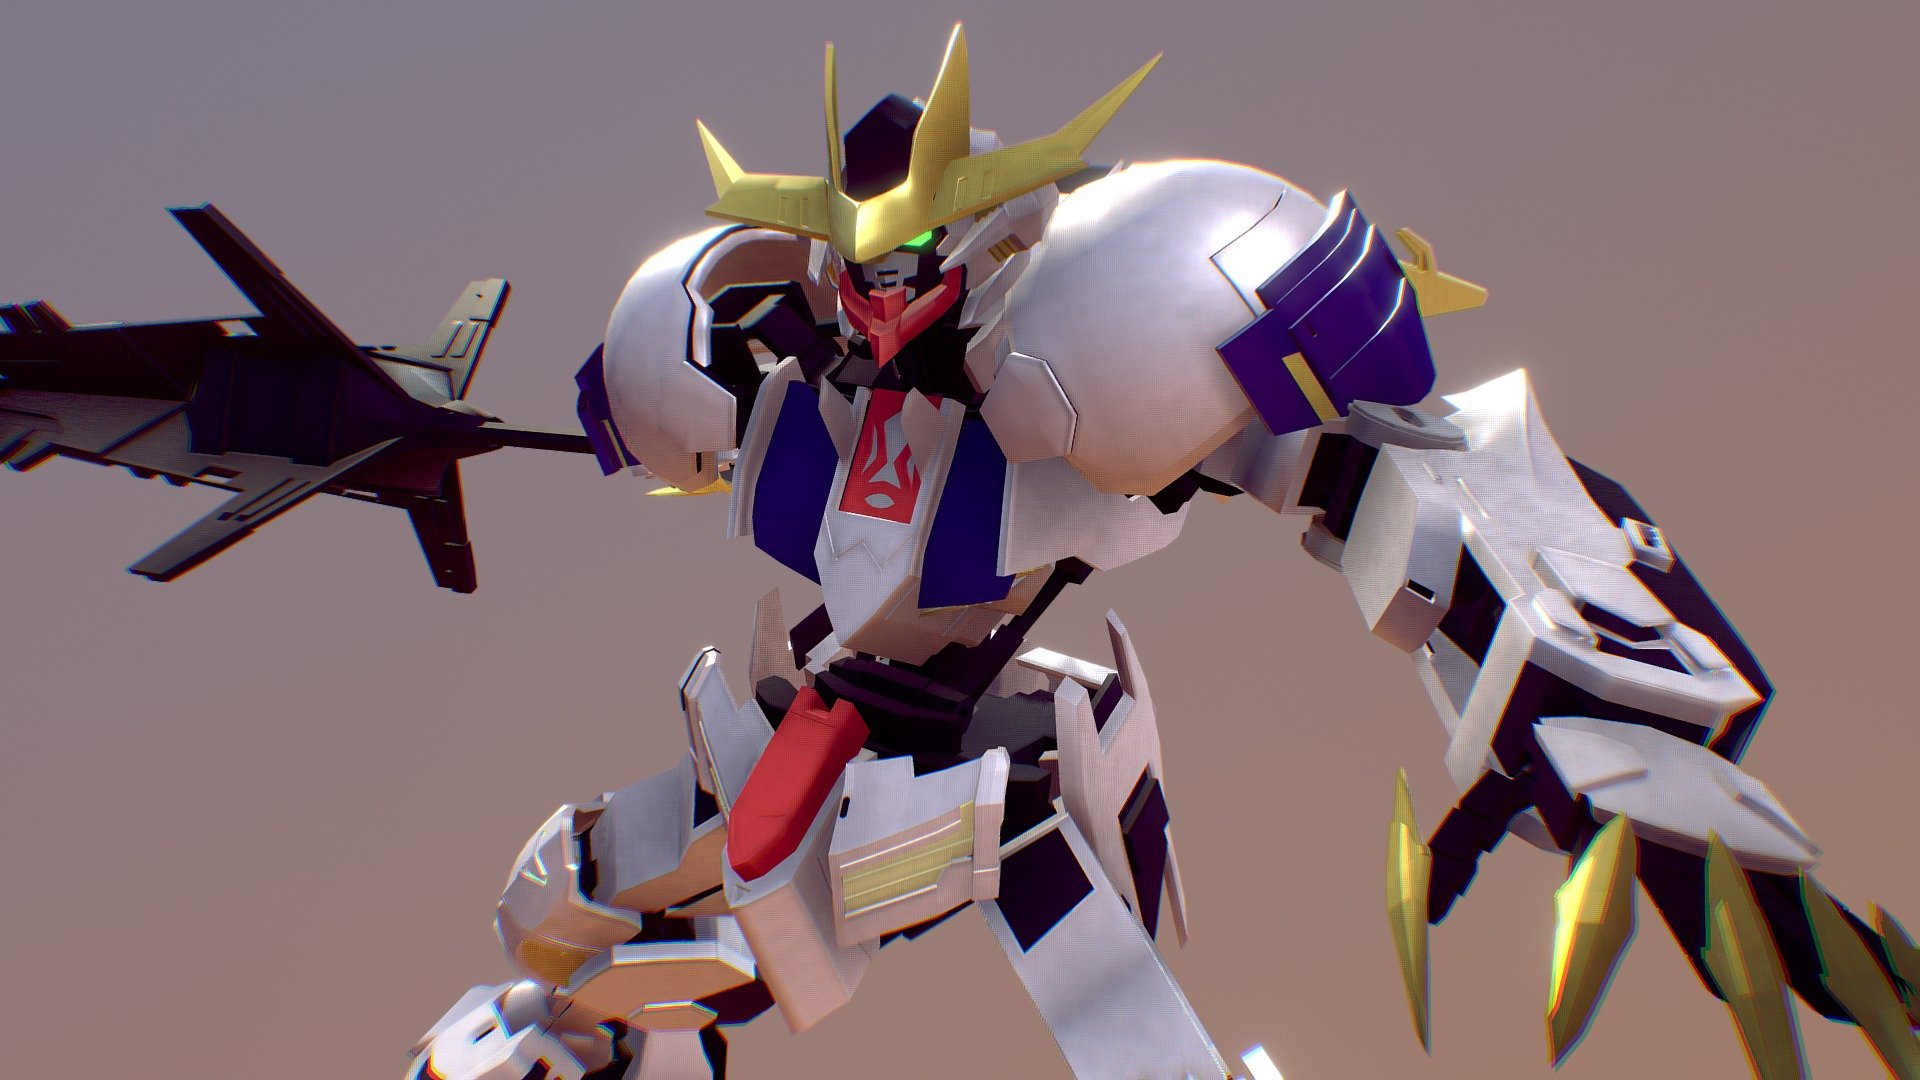 Asw G 08 Gundam Barbatos Lupus Rex Pose 3d Model By Karntipyan